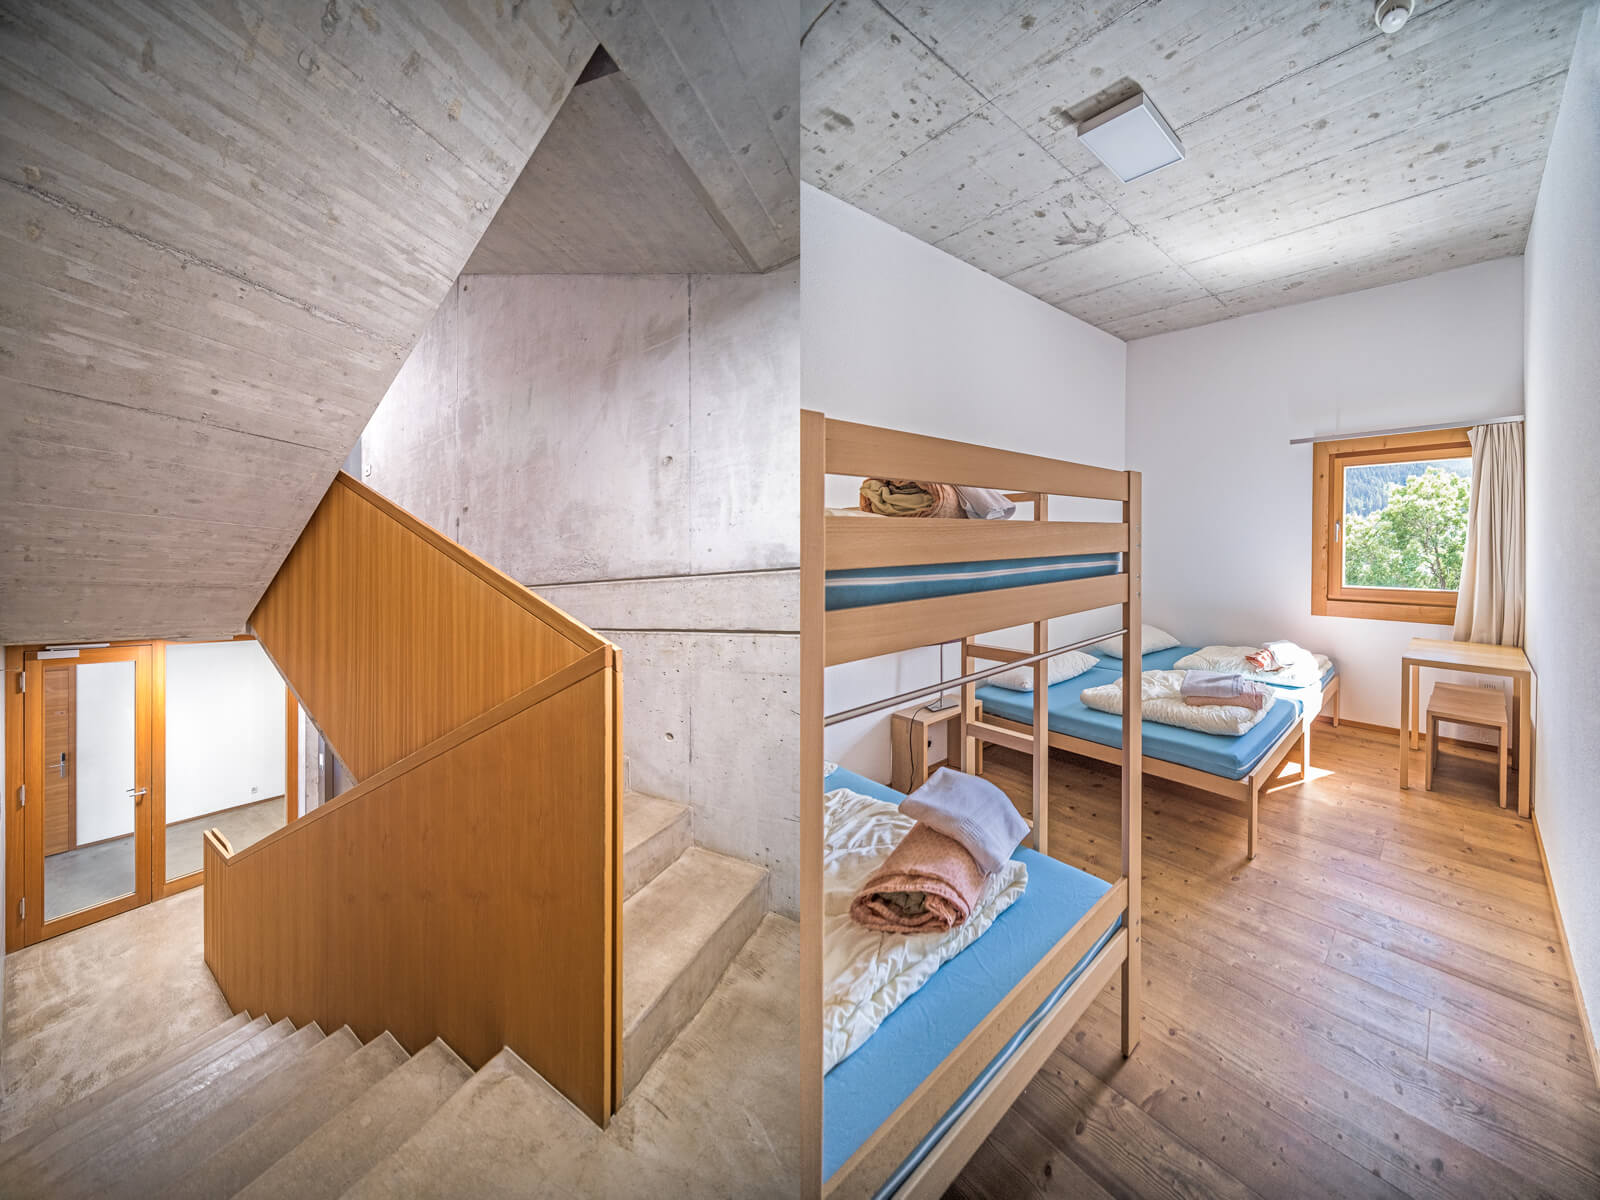 Scuol Youth Hostel Architecture